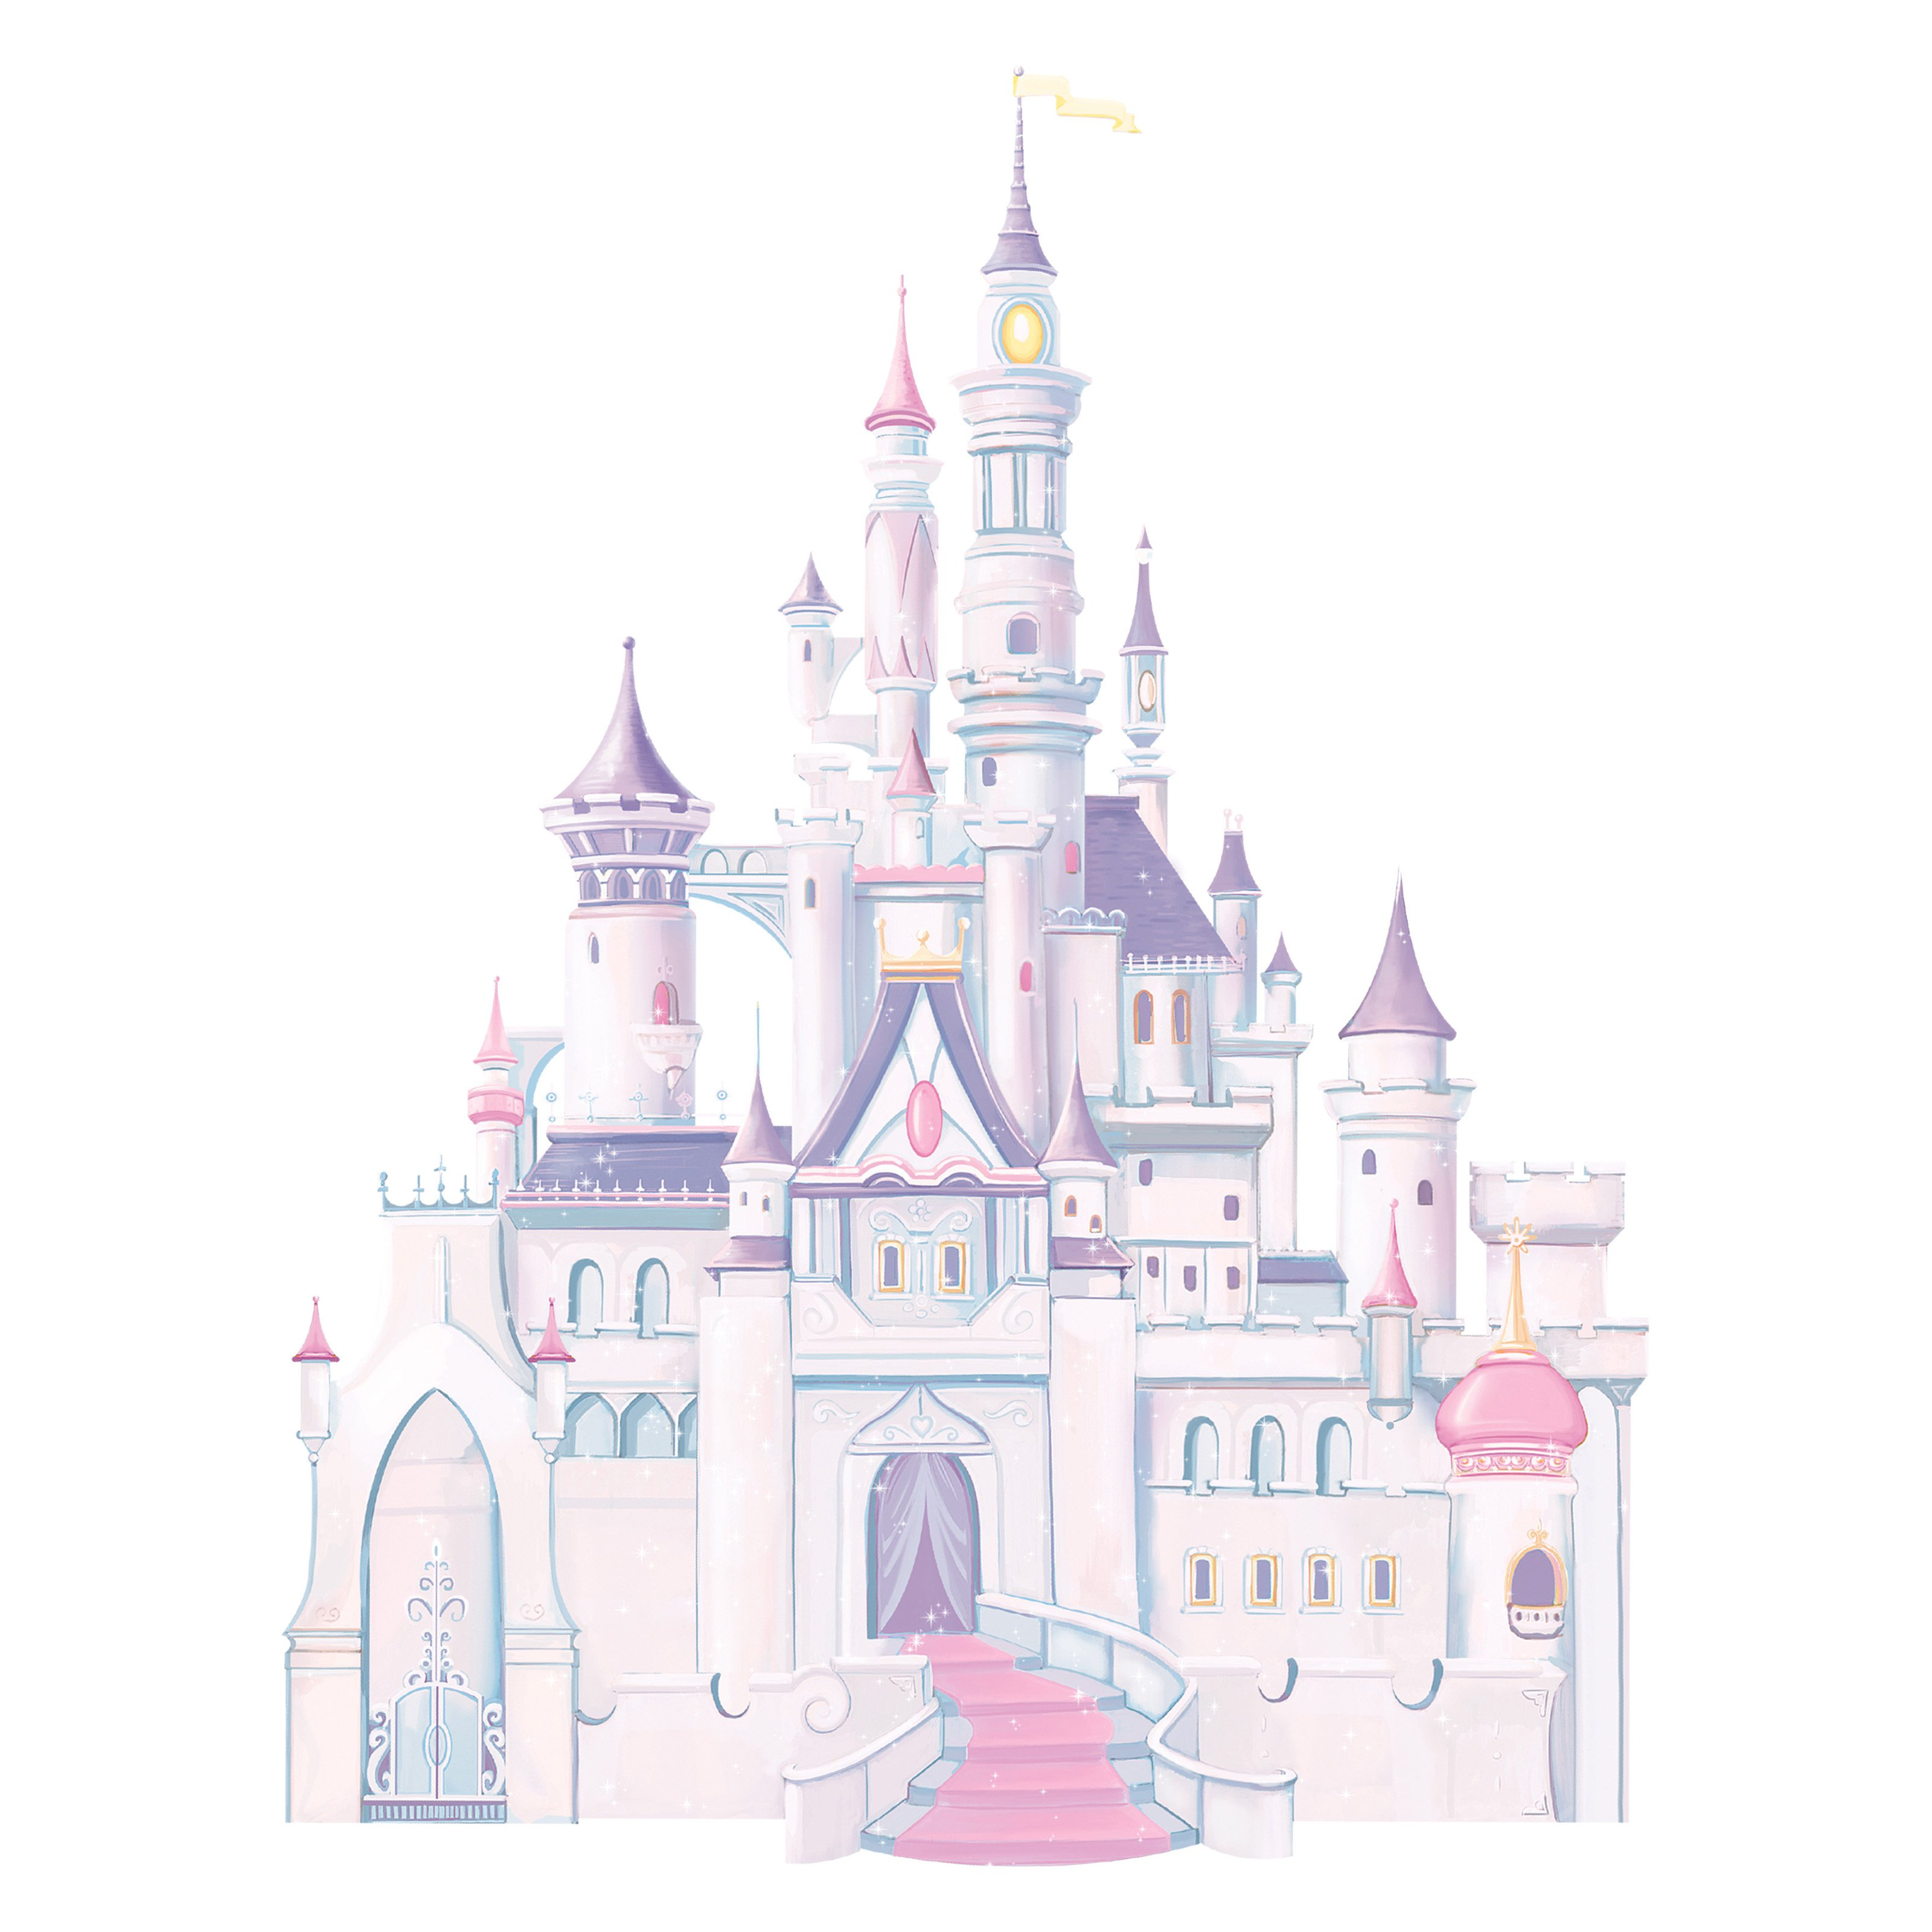 Disney Princess - Princess Castle Peel and Stick Giant Wall Decal